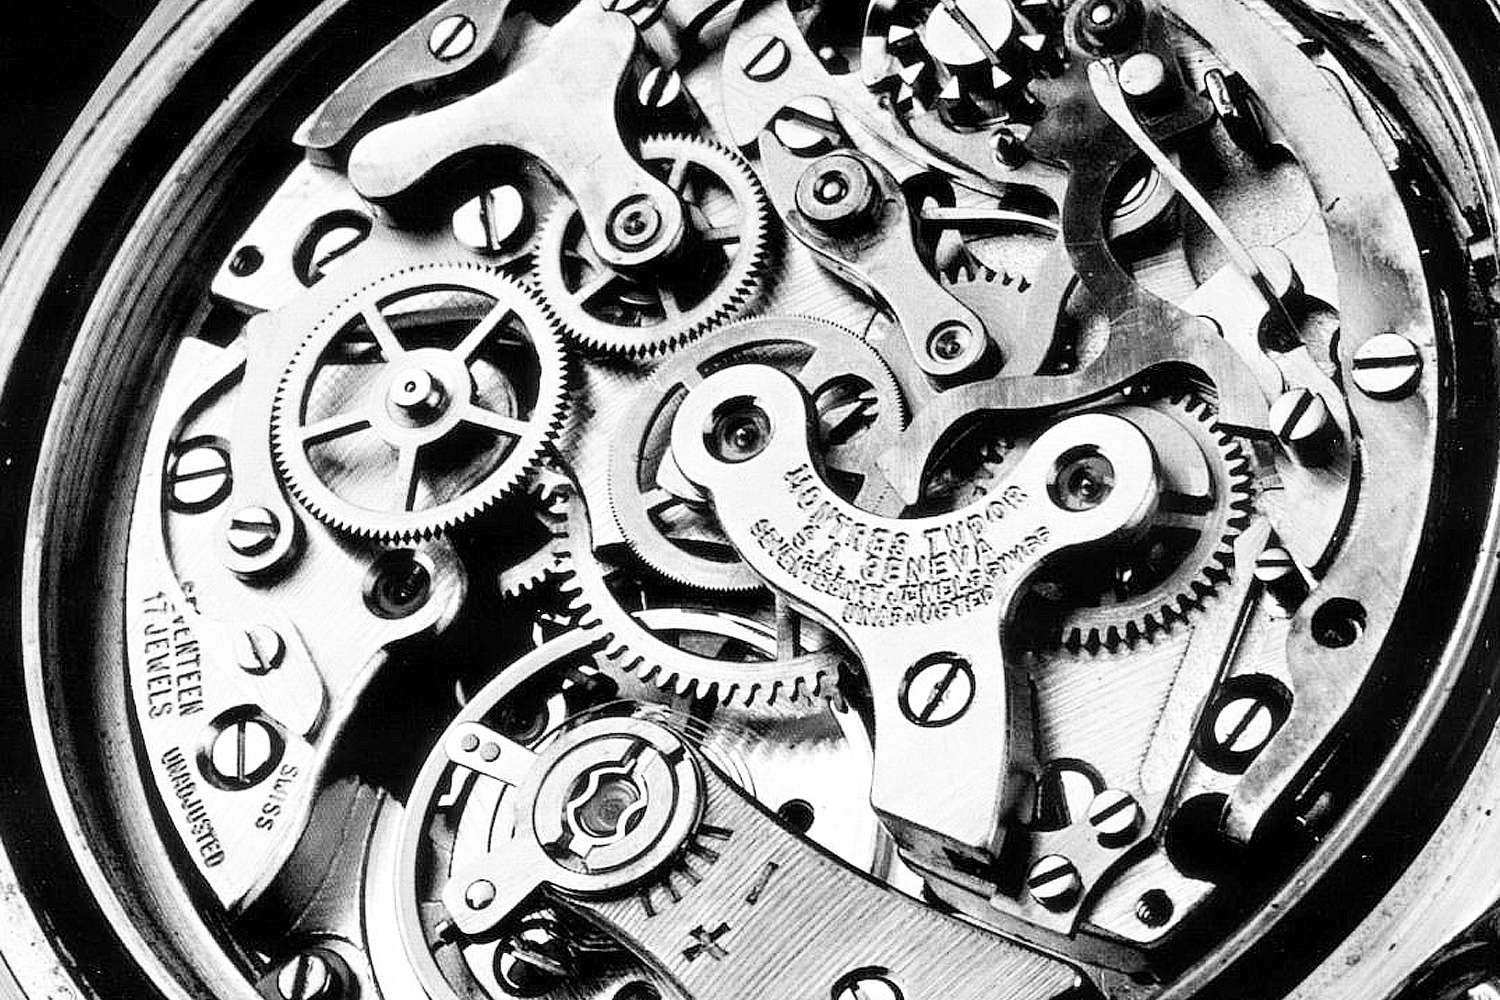 A Beginners Guide to Mechanical Watches